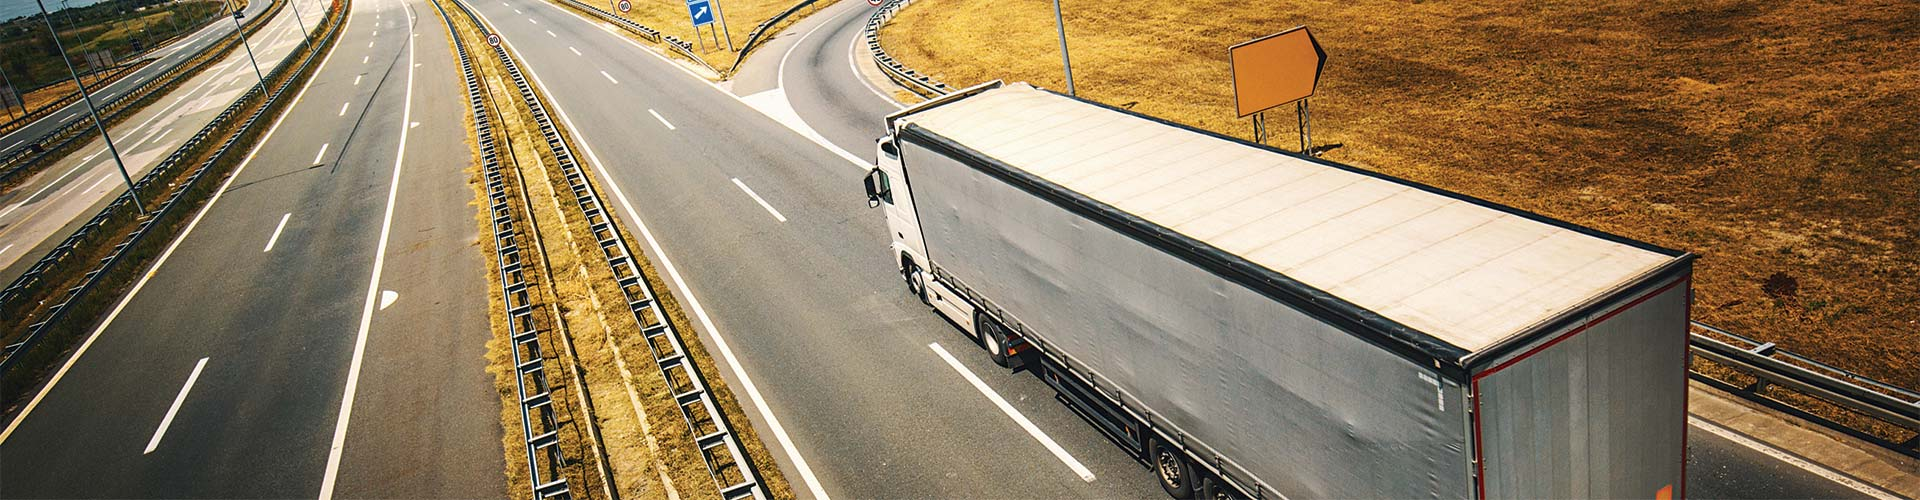 Total Solution for Truckload Carriers